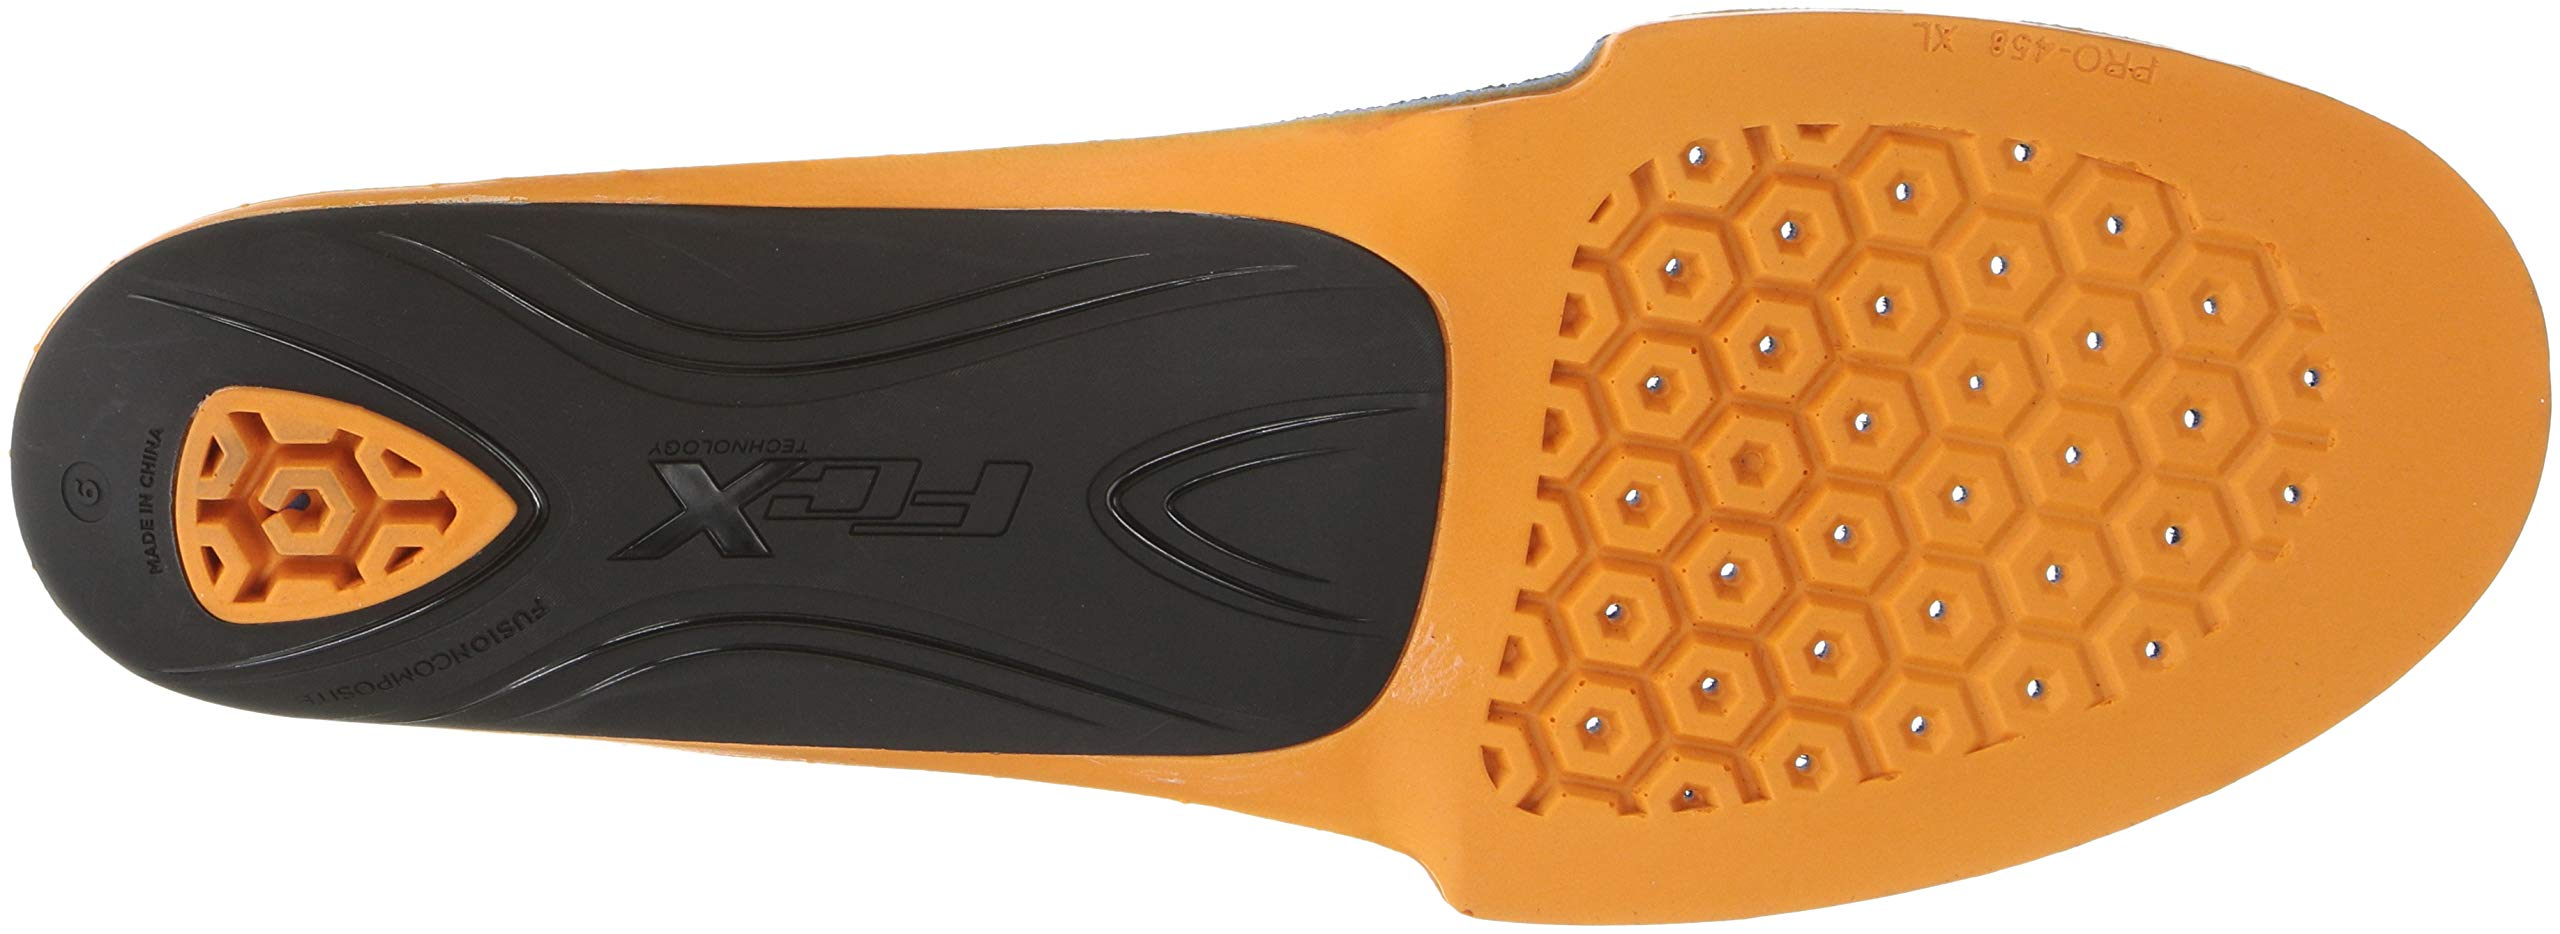 Timberland PRO Anti-Fatigue Footbed Powered by FCX Technology Insole, Orange/Black, L Medium US